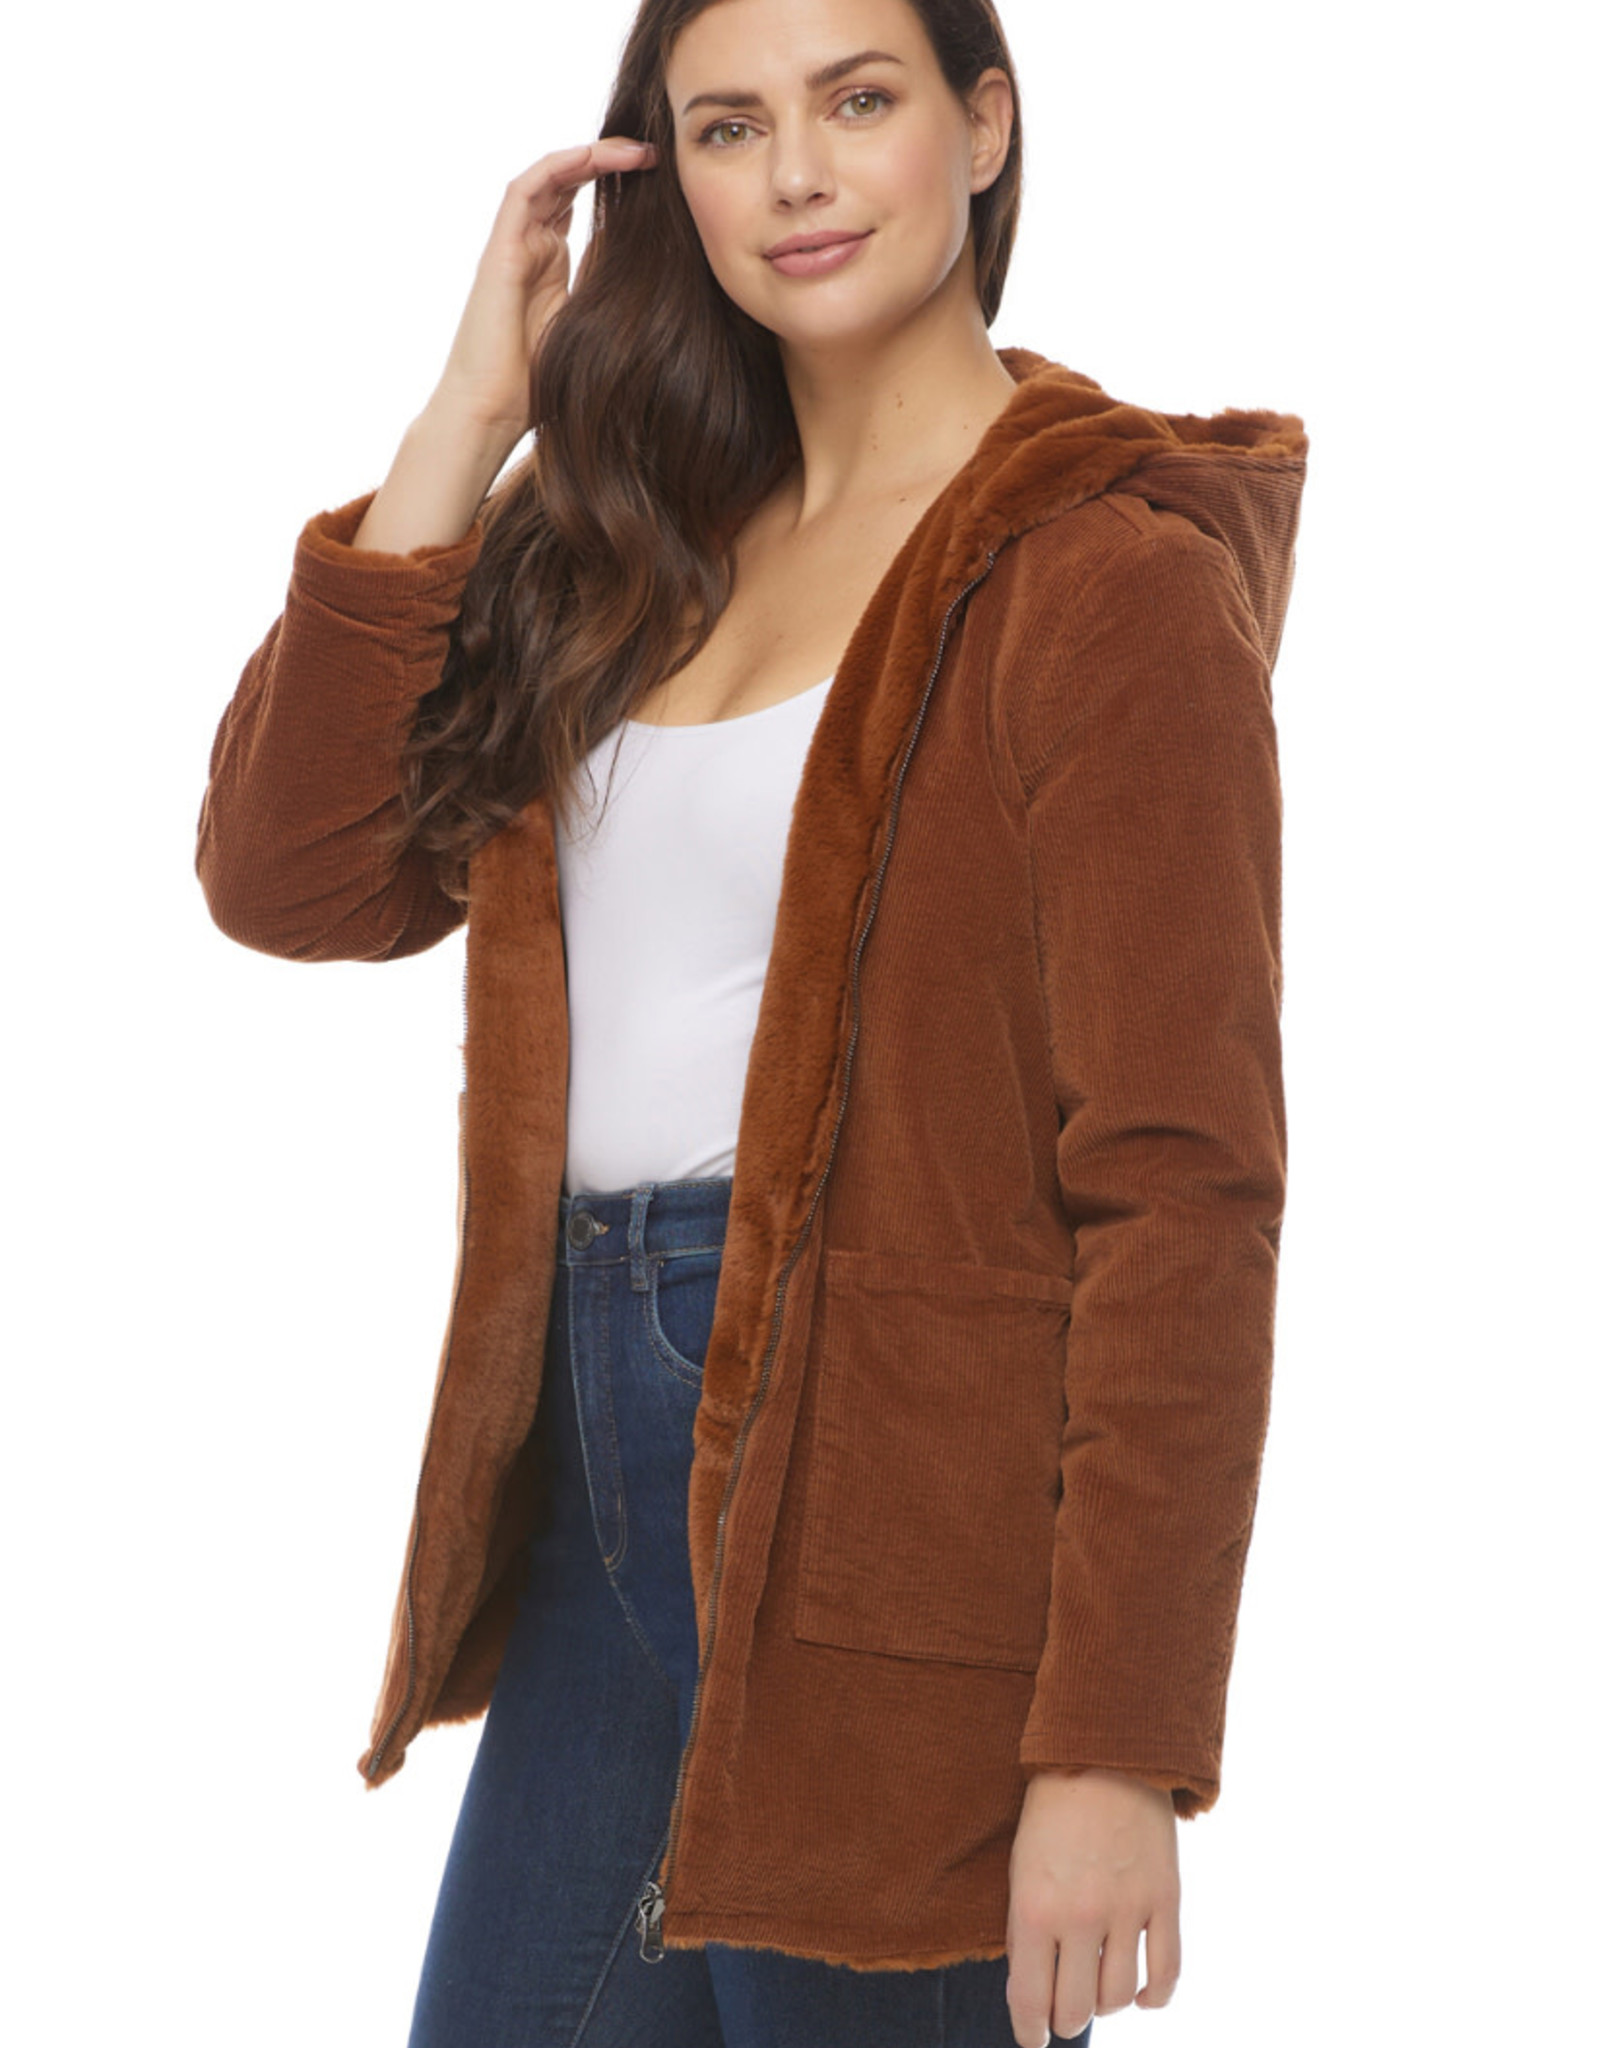 French Dressing Jeans FDJ Reversible  Zip Up Jacket with Pockets and a Hood